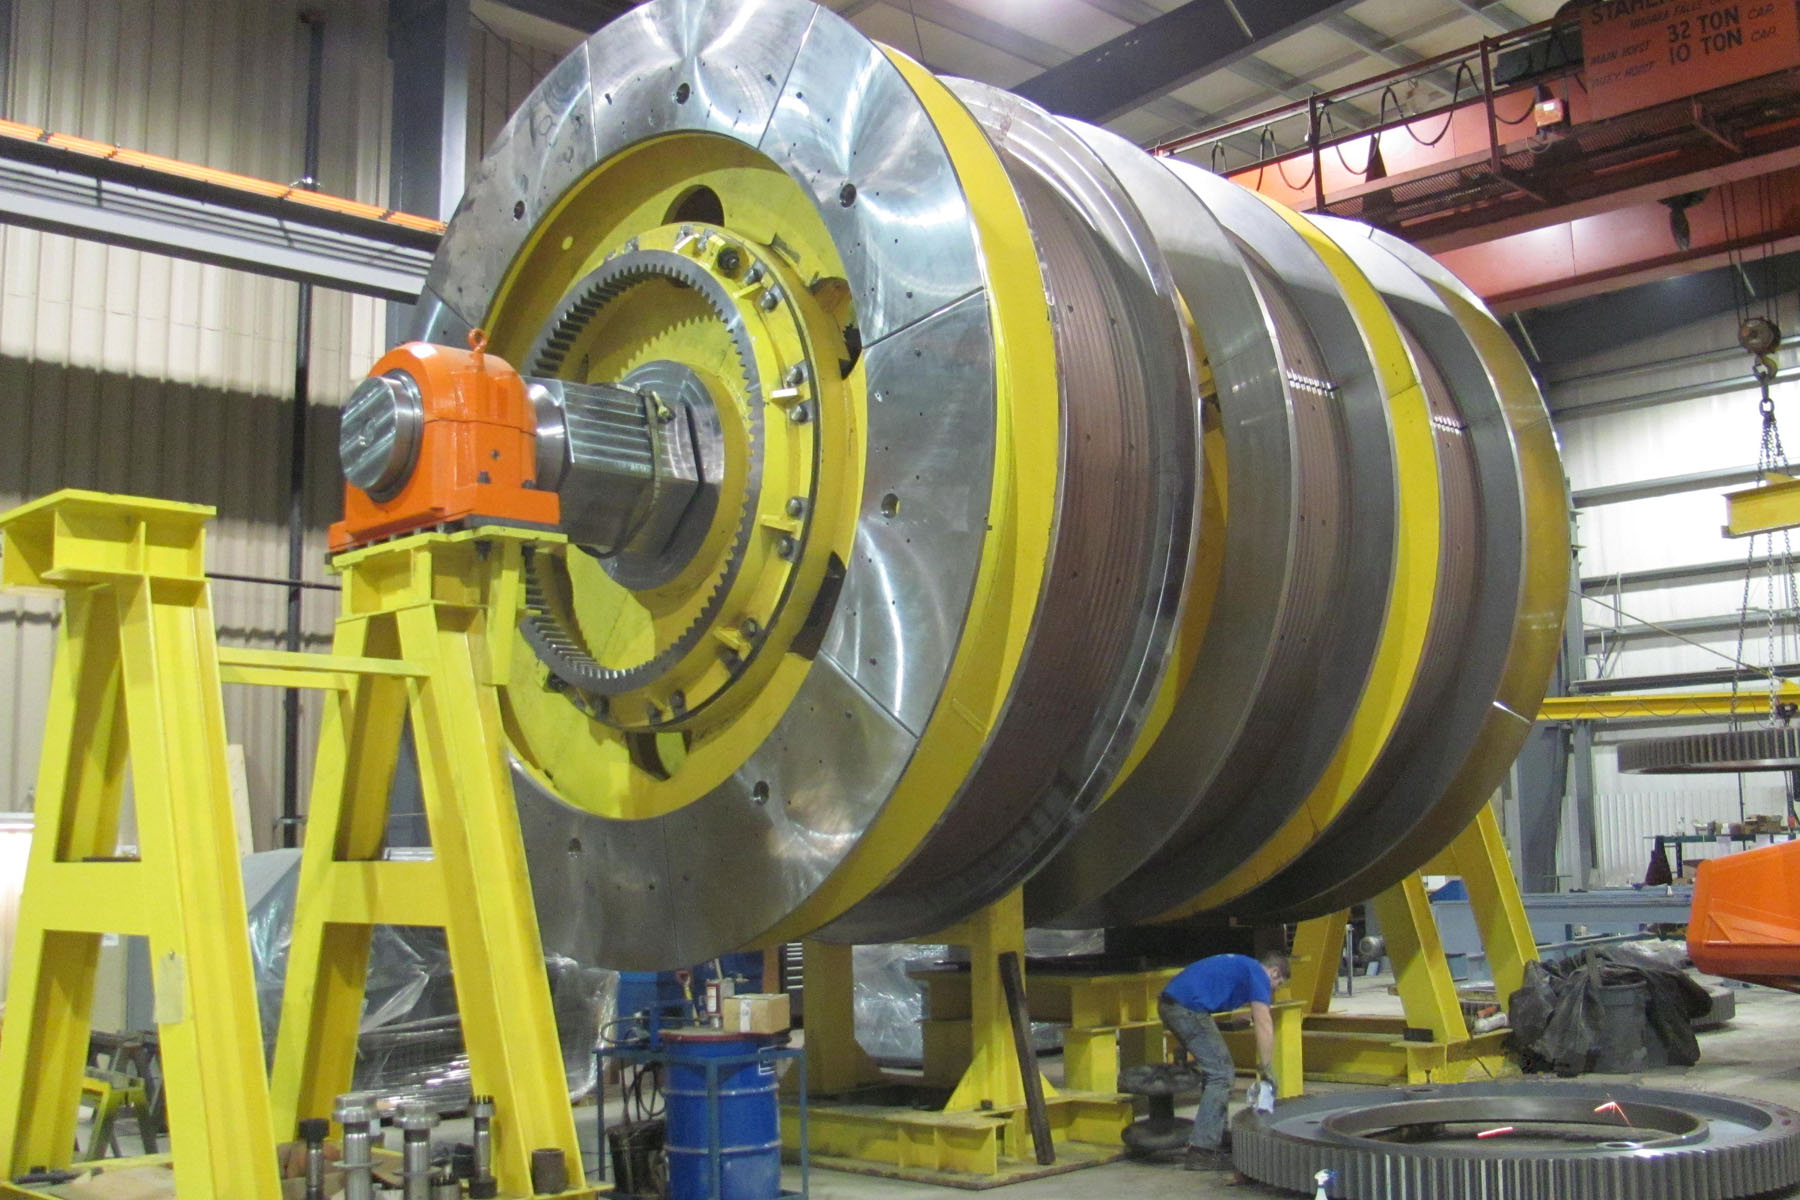 Machined, fabricated and painted product at Canerector facility